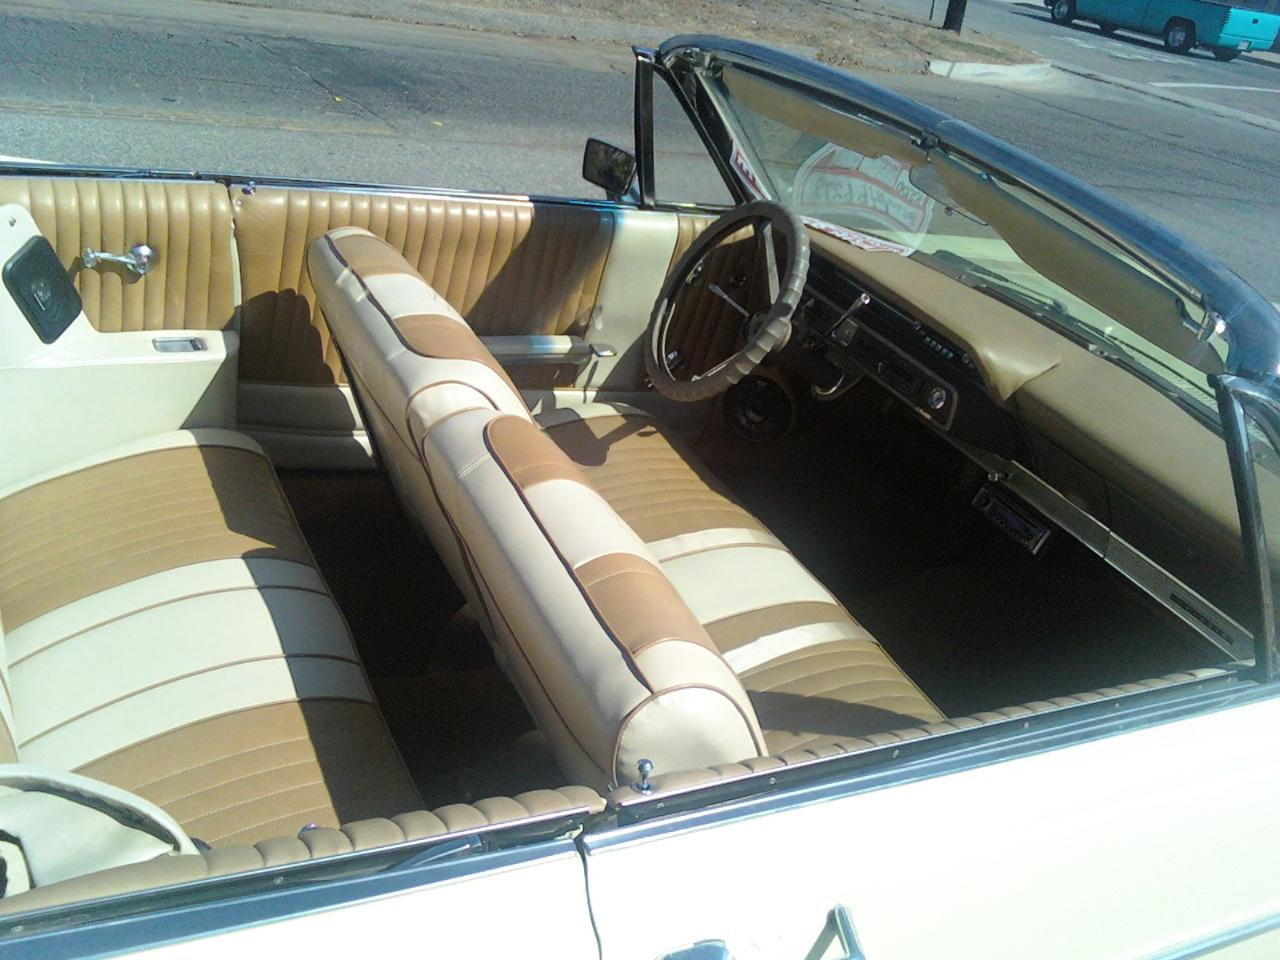 1966 Ford Galaxie Convertible-photo-3.jpg